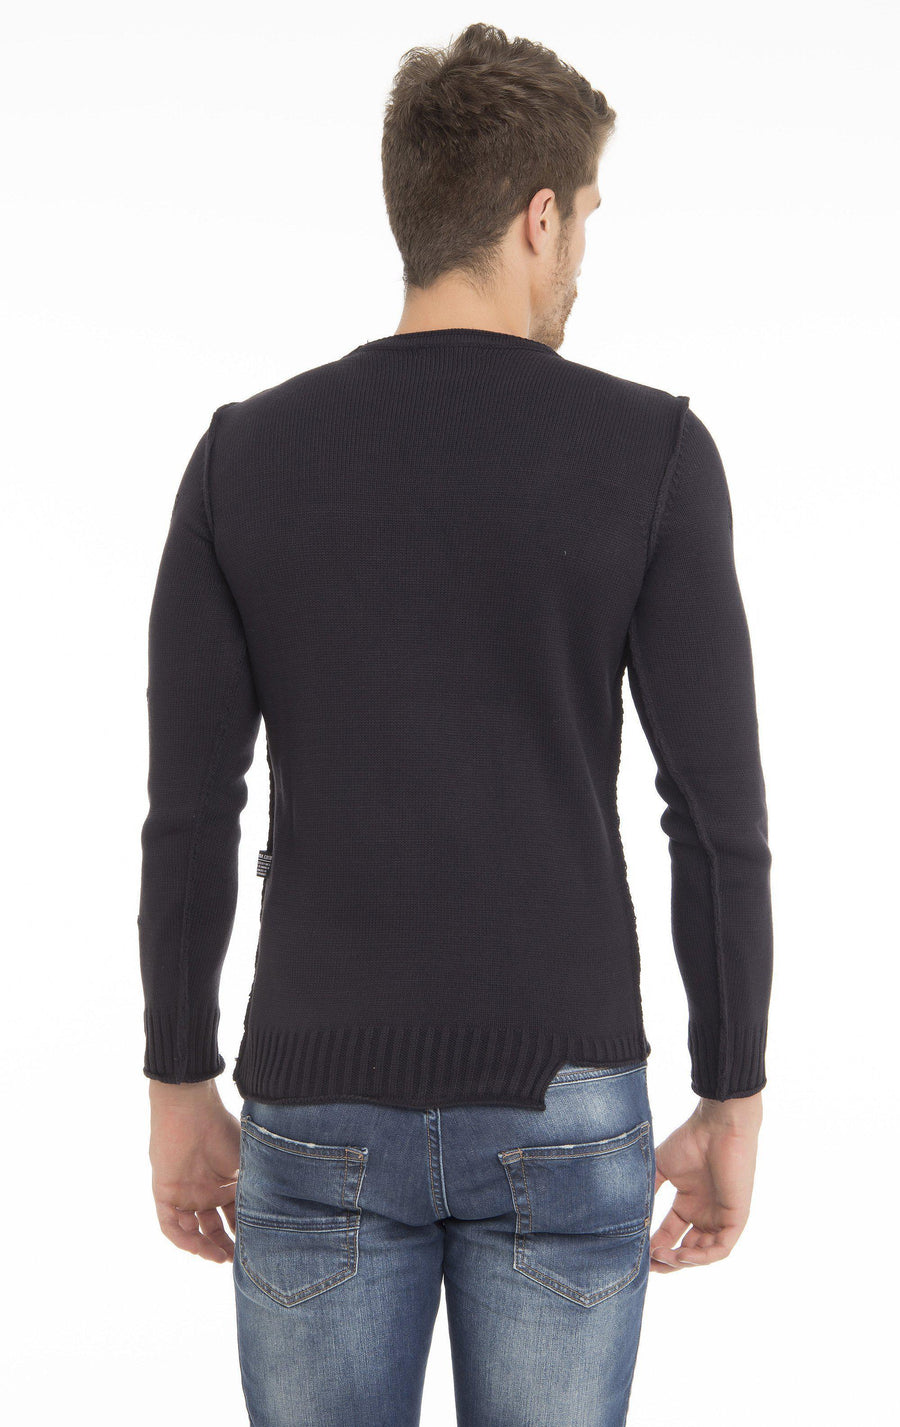 Distressed Fitted Long Sleeved Sweater - More Colors-Knitwear-Ron Tomson-NAVY-M-Ron Tomson